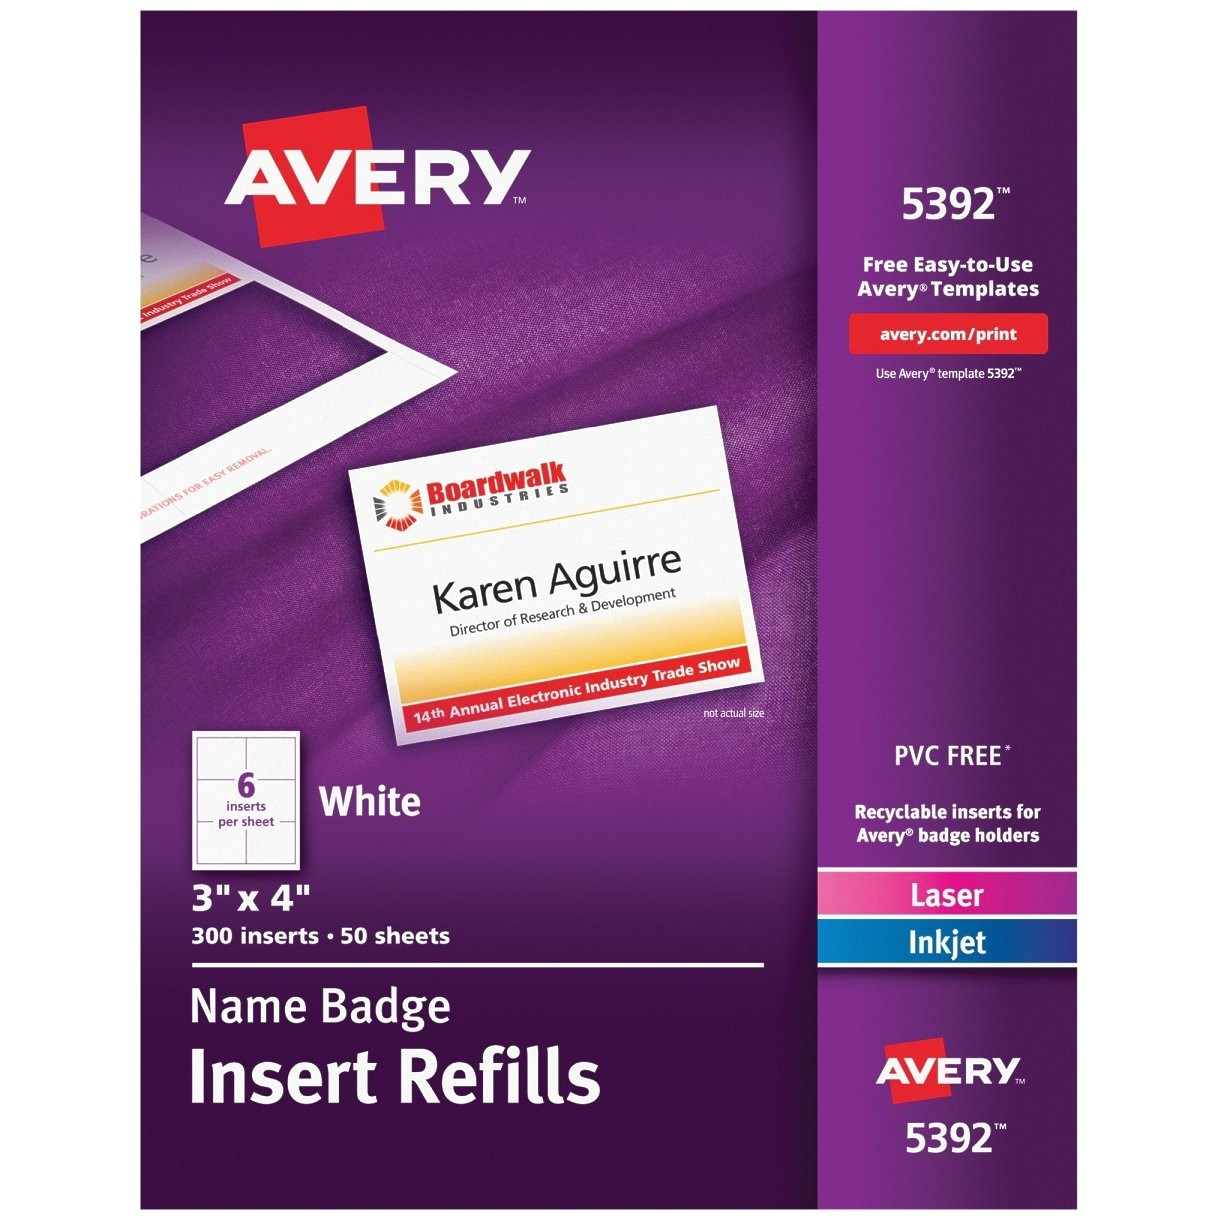 Avery 4×3 Name Badge Template Avery 5392 Name Badge Insert Refill 4 Inch Width X 3